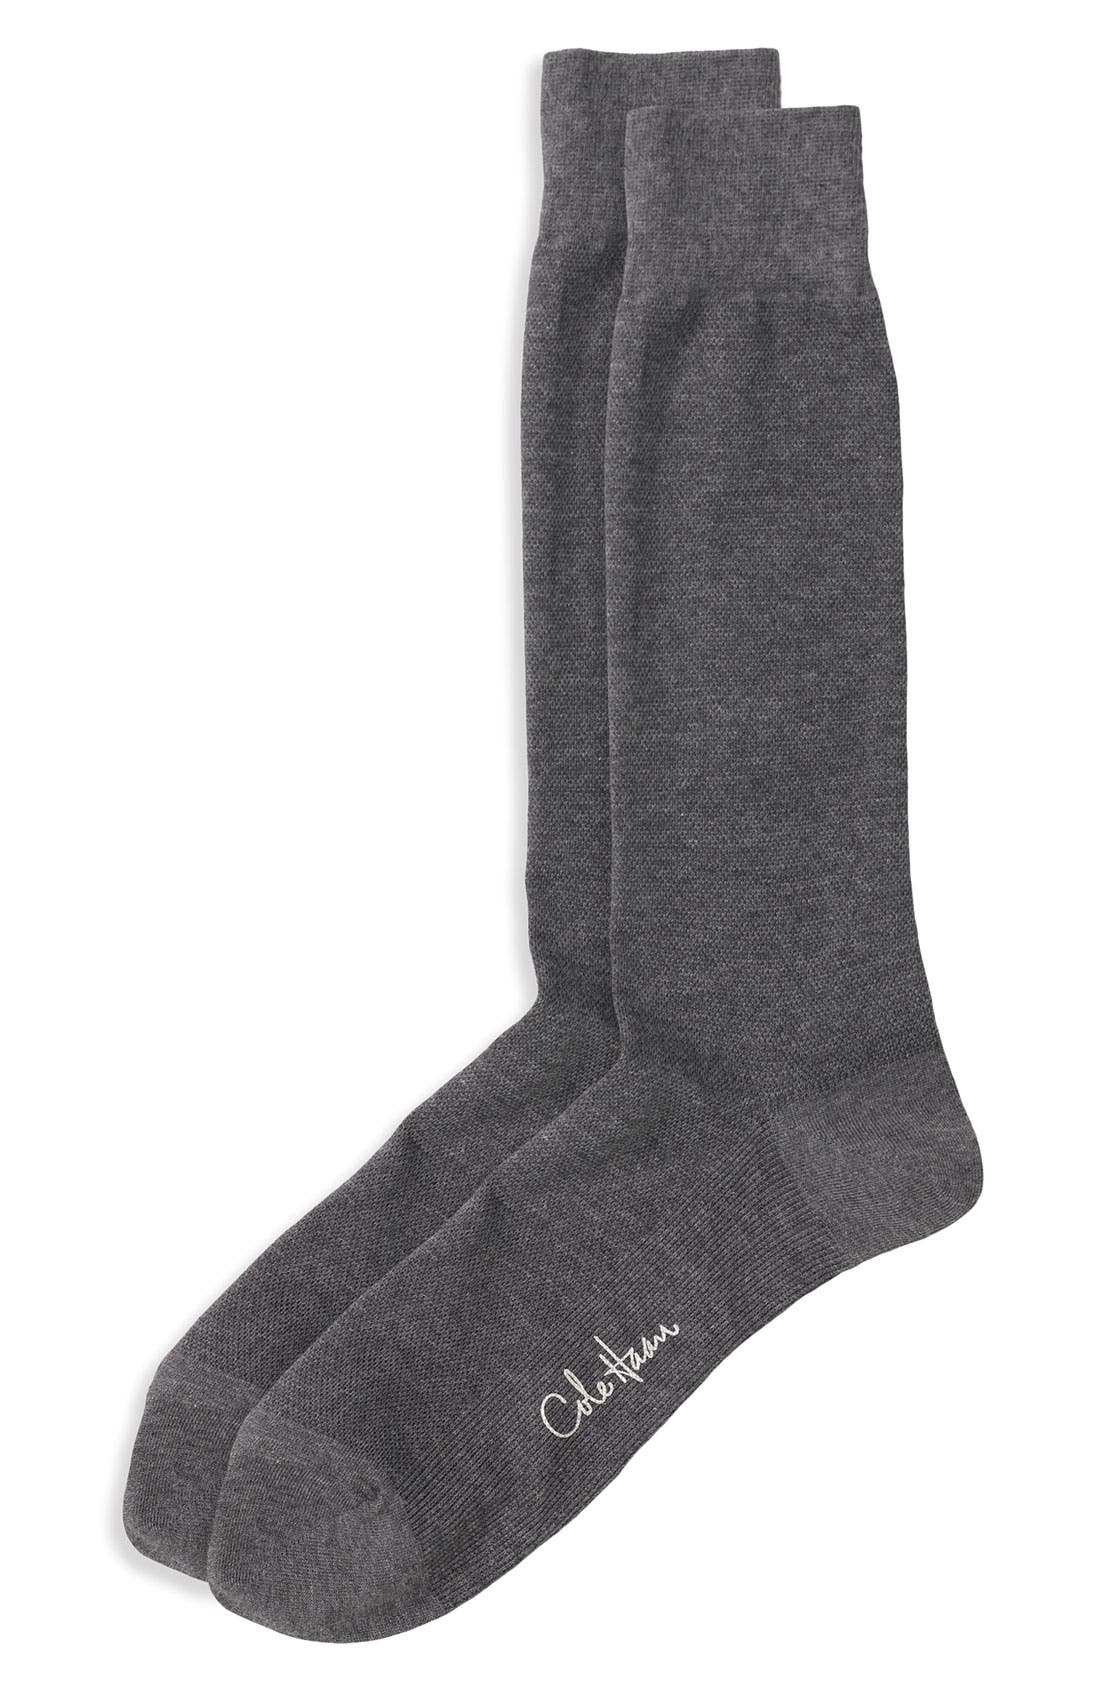 Alternate Image 1 Selected - Cole Haan Mid Calf Dress Socks